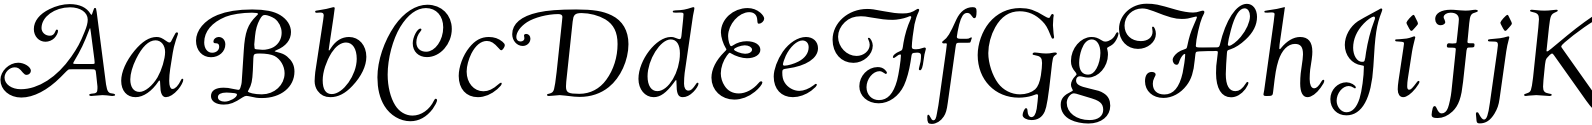 Goudy Swash Regular Italic Font